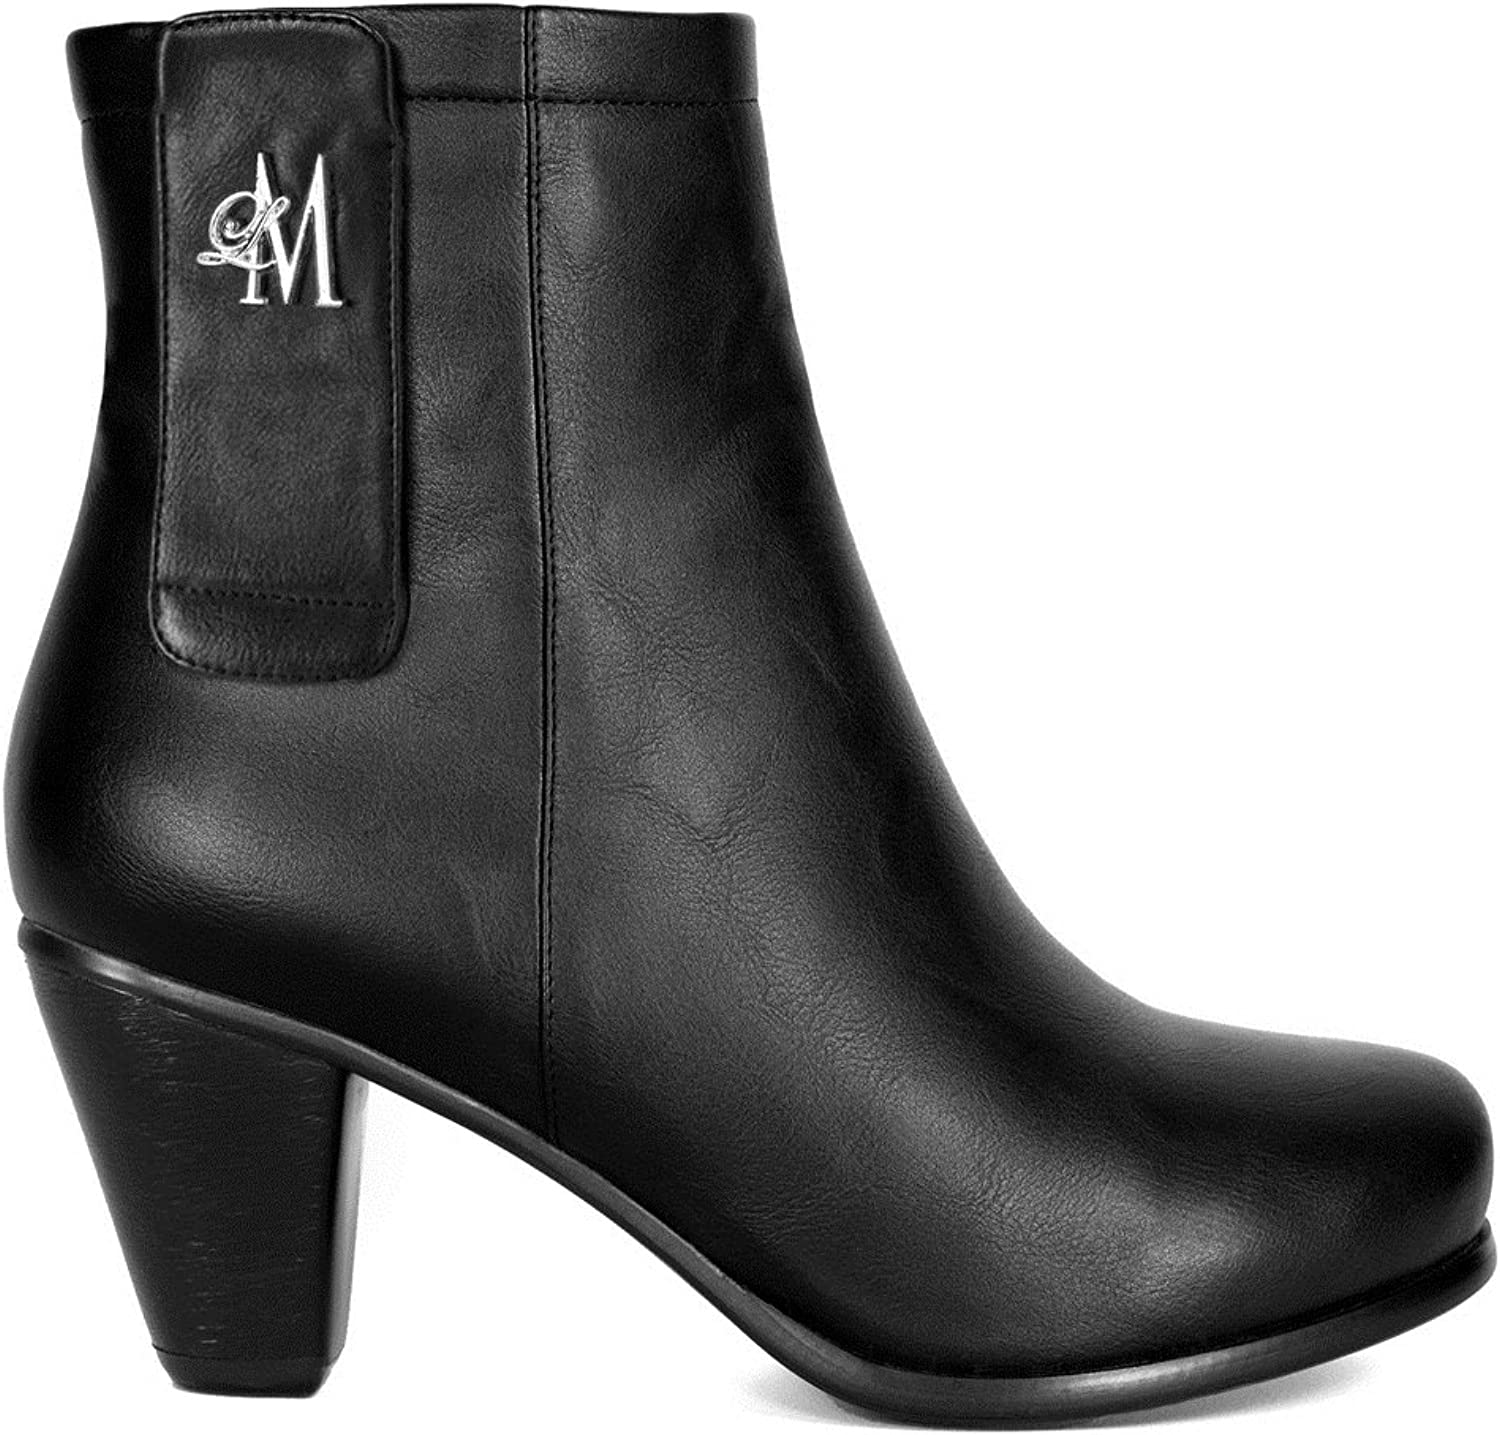 Llynda More Women's 'More Light' Faux Leather Comfortable Mid Heel Ankle Boot